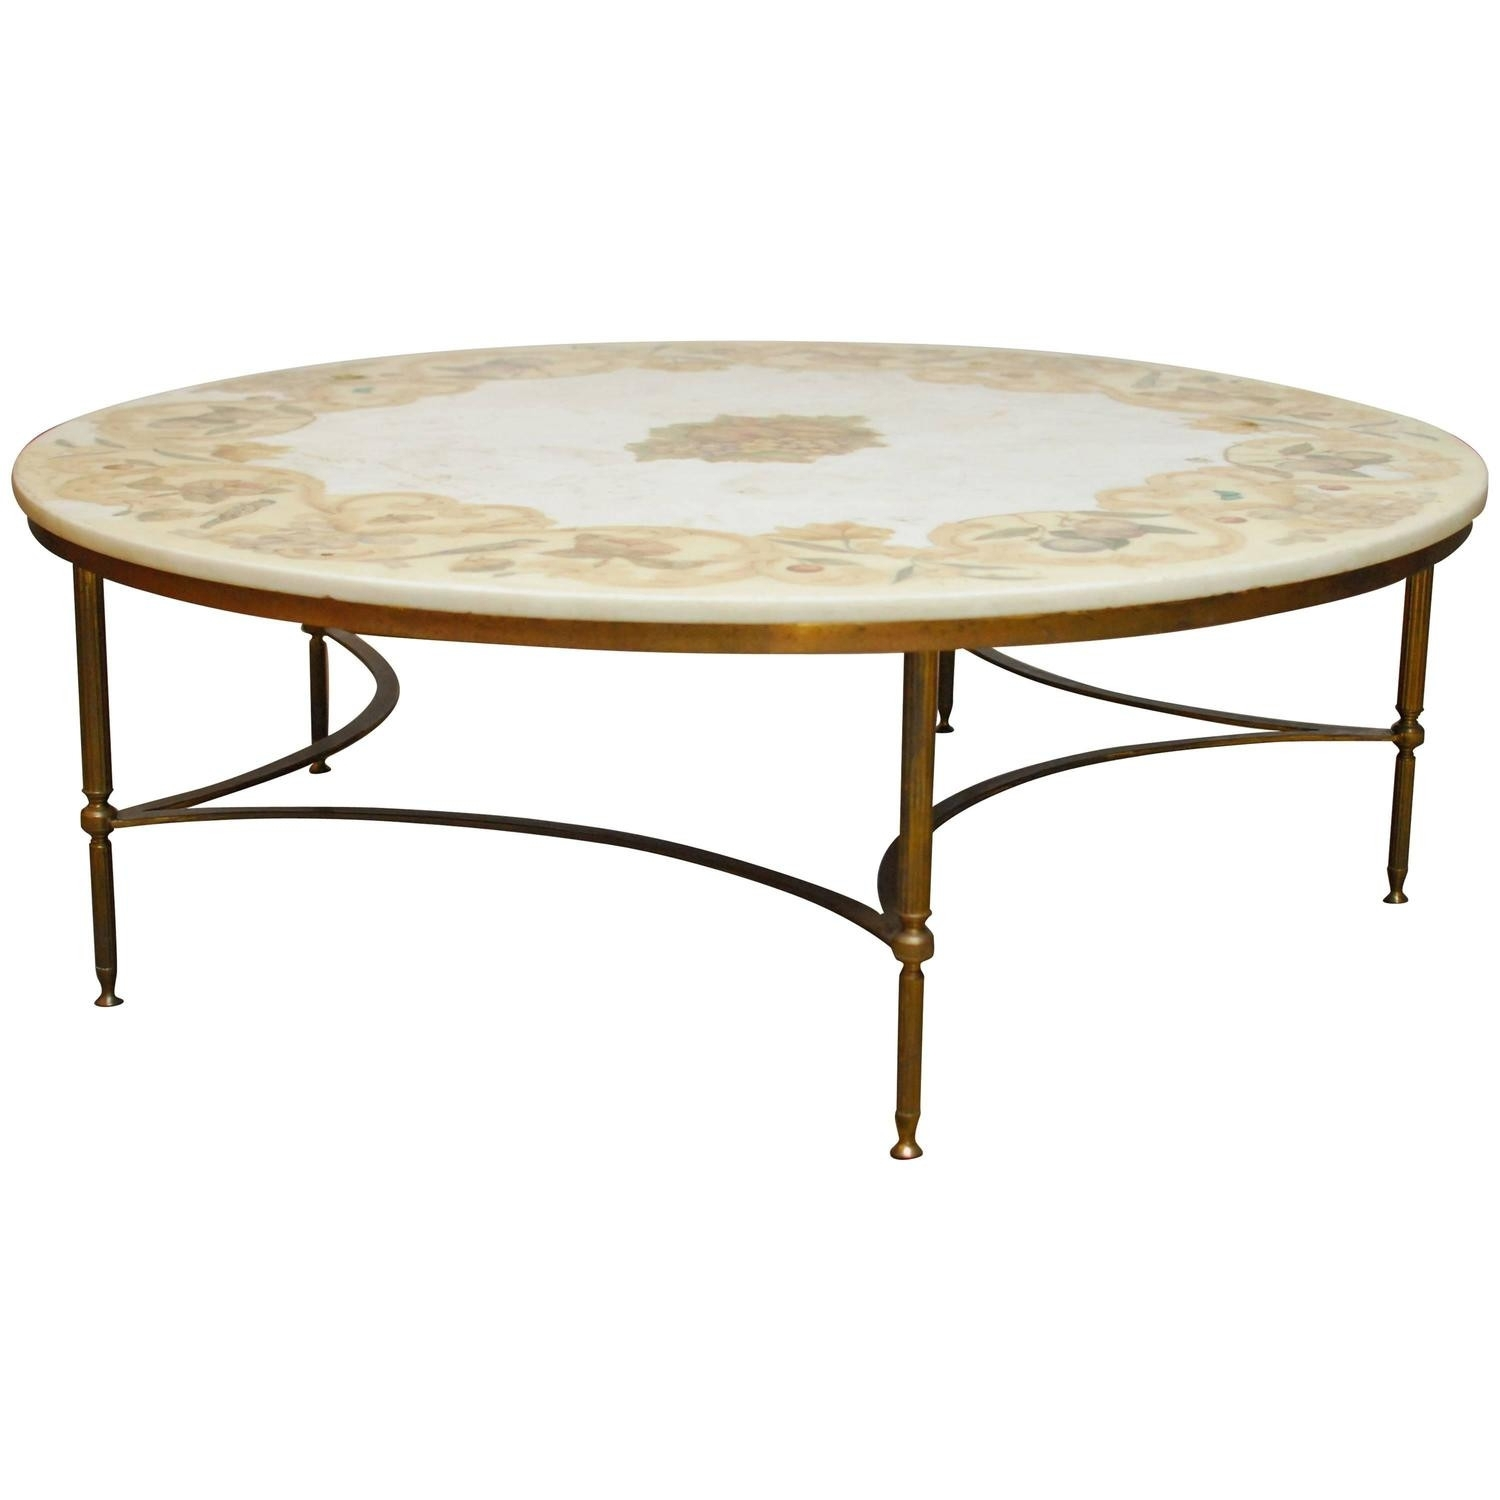 Round Marble And Brass Coffee Table – Coffee Table Ideas Within Smart Round Marble Brass Coffee Tables (View 26 of 30)